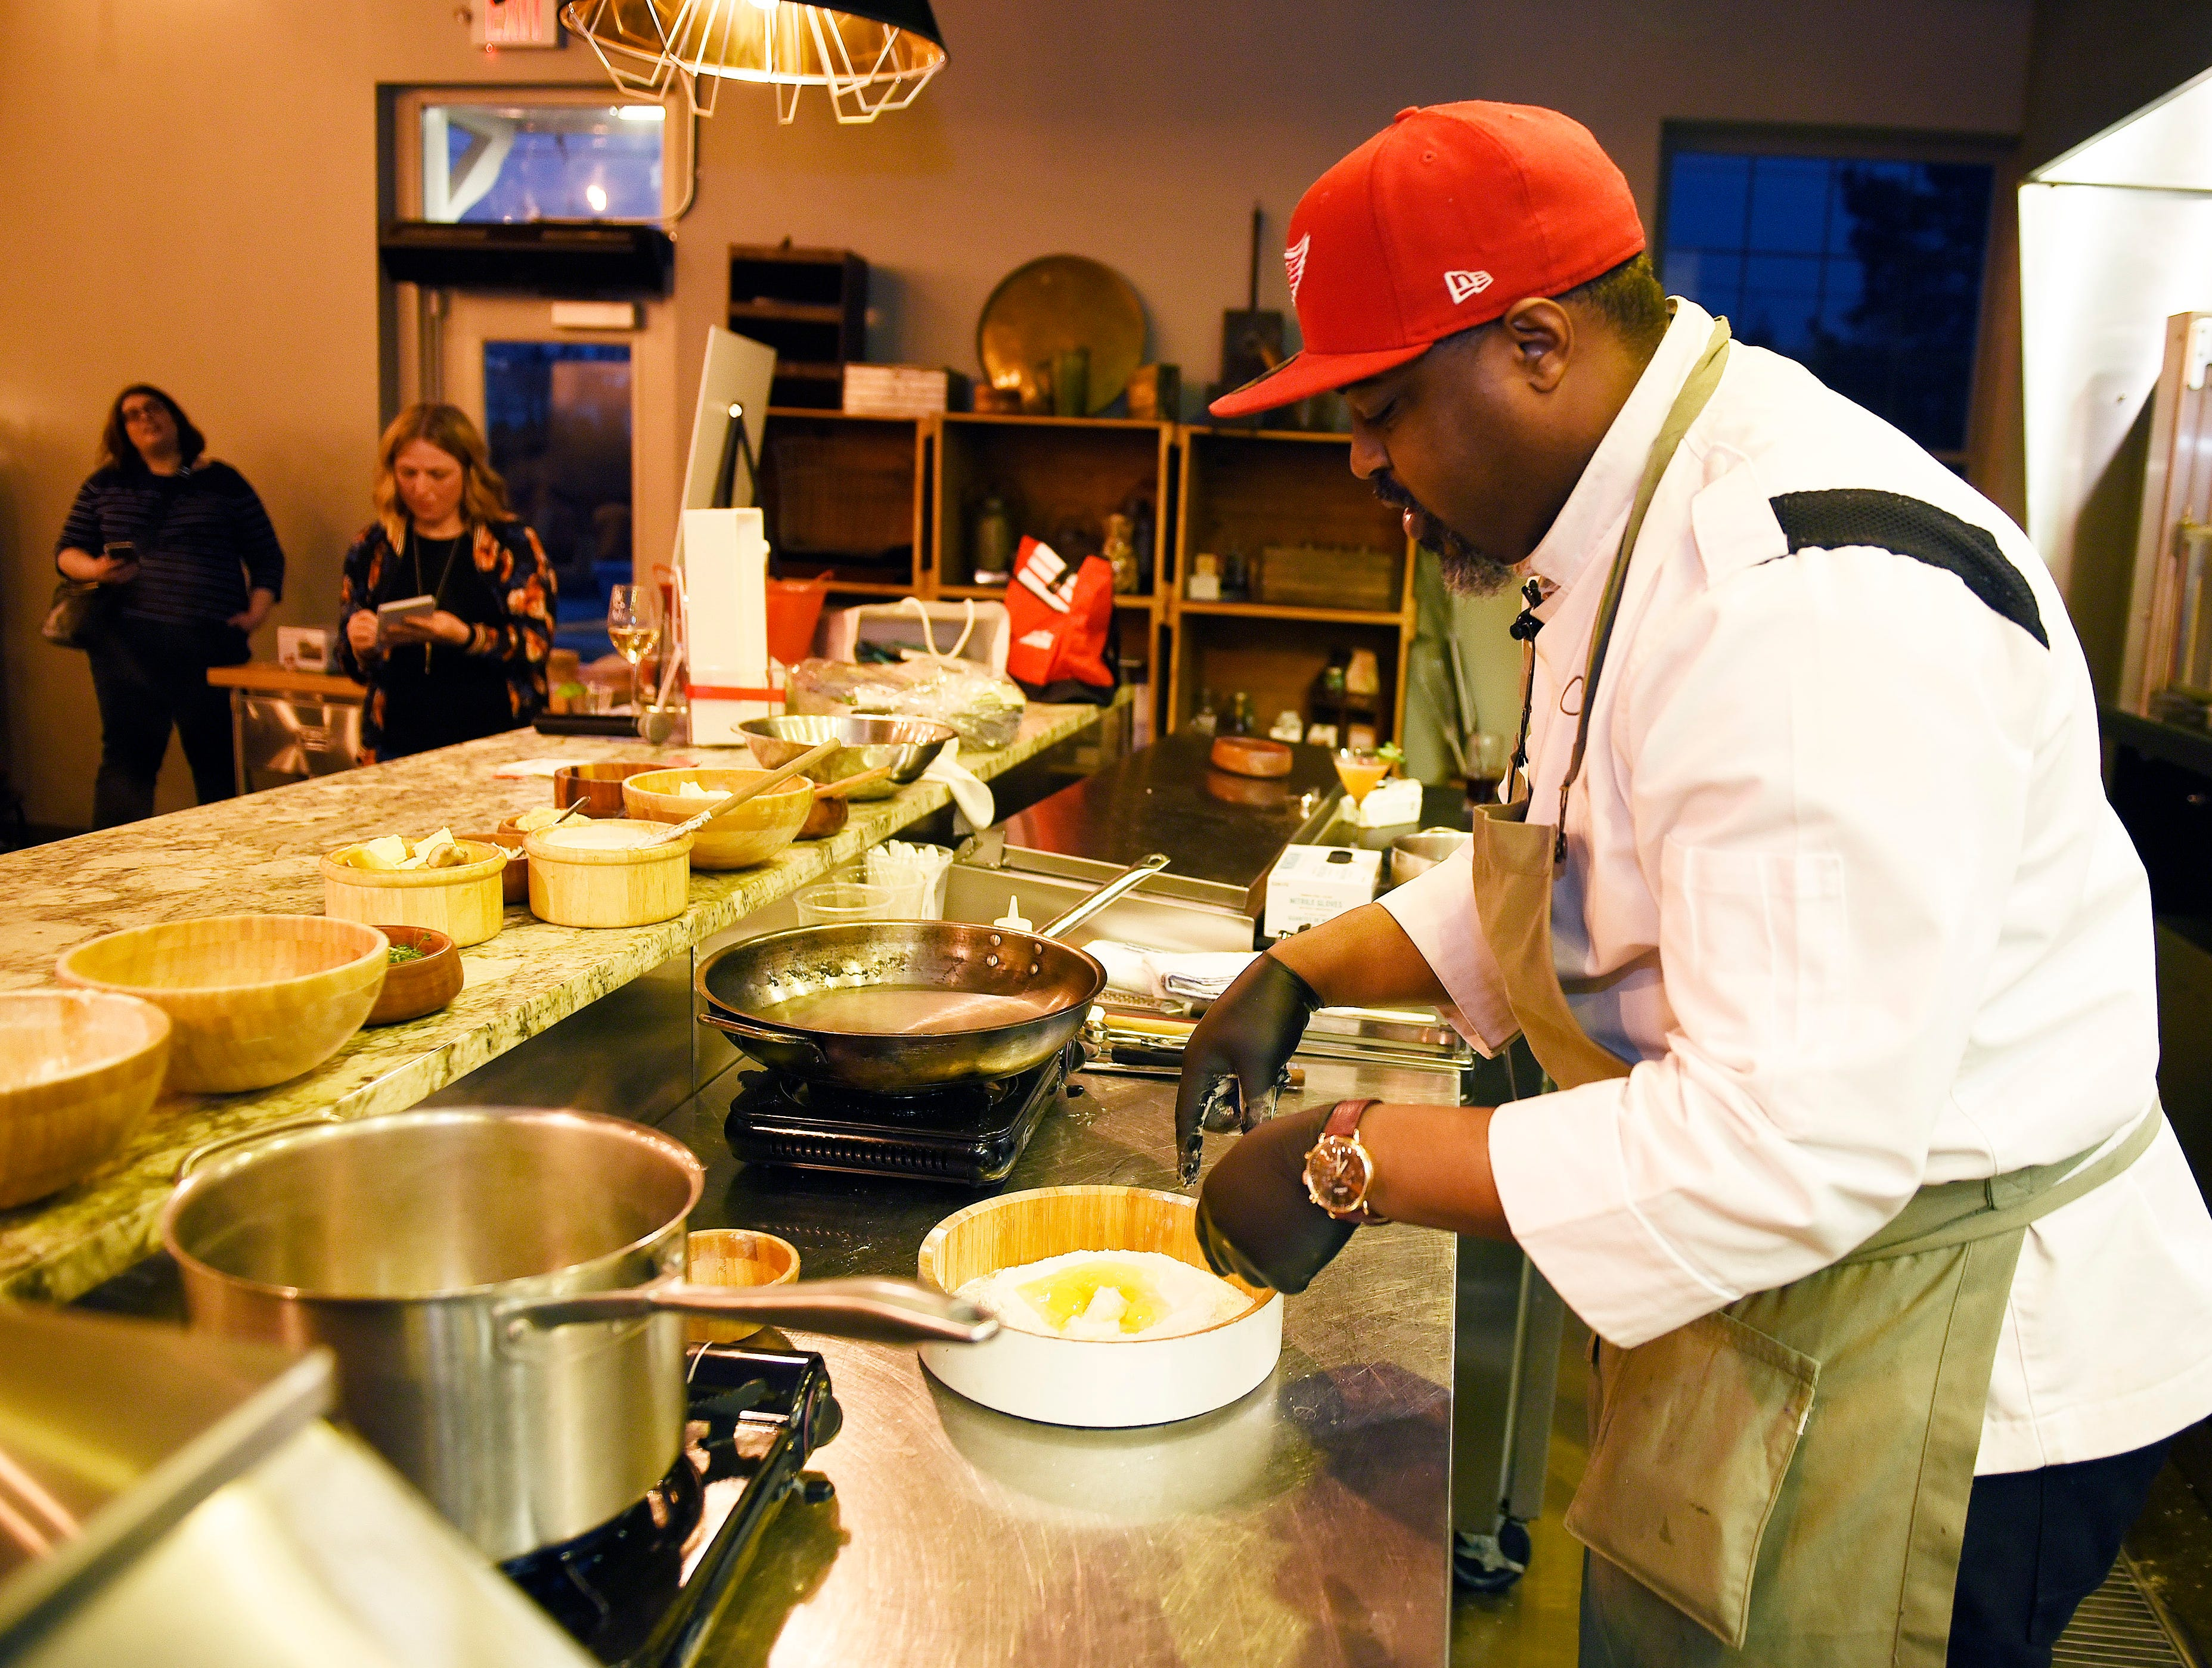 Max Hardy, Executive Chef, The River Bistro, he is seen making a ravioli pasta dish.